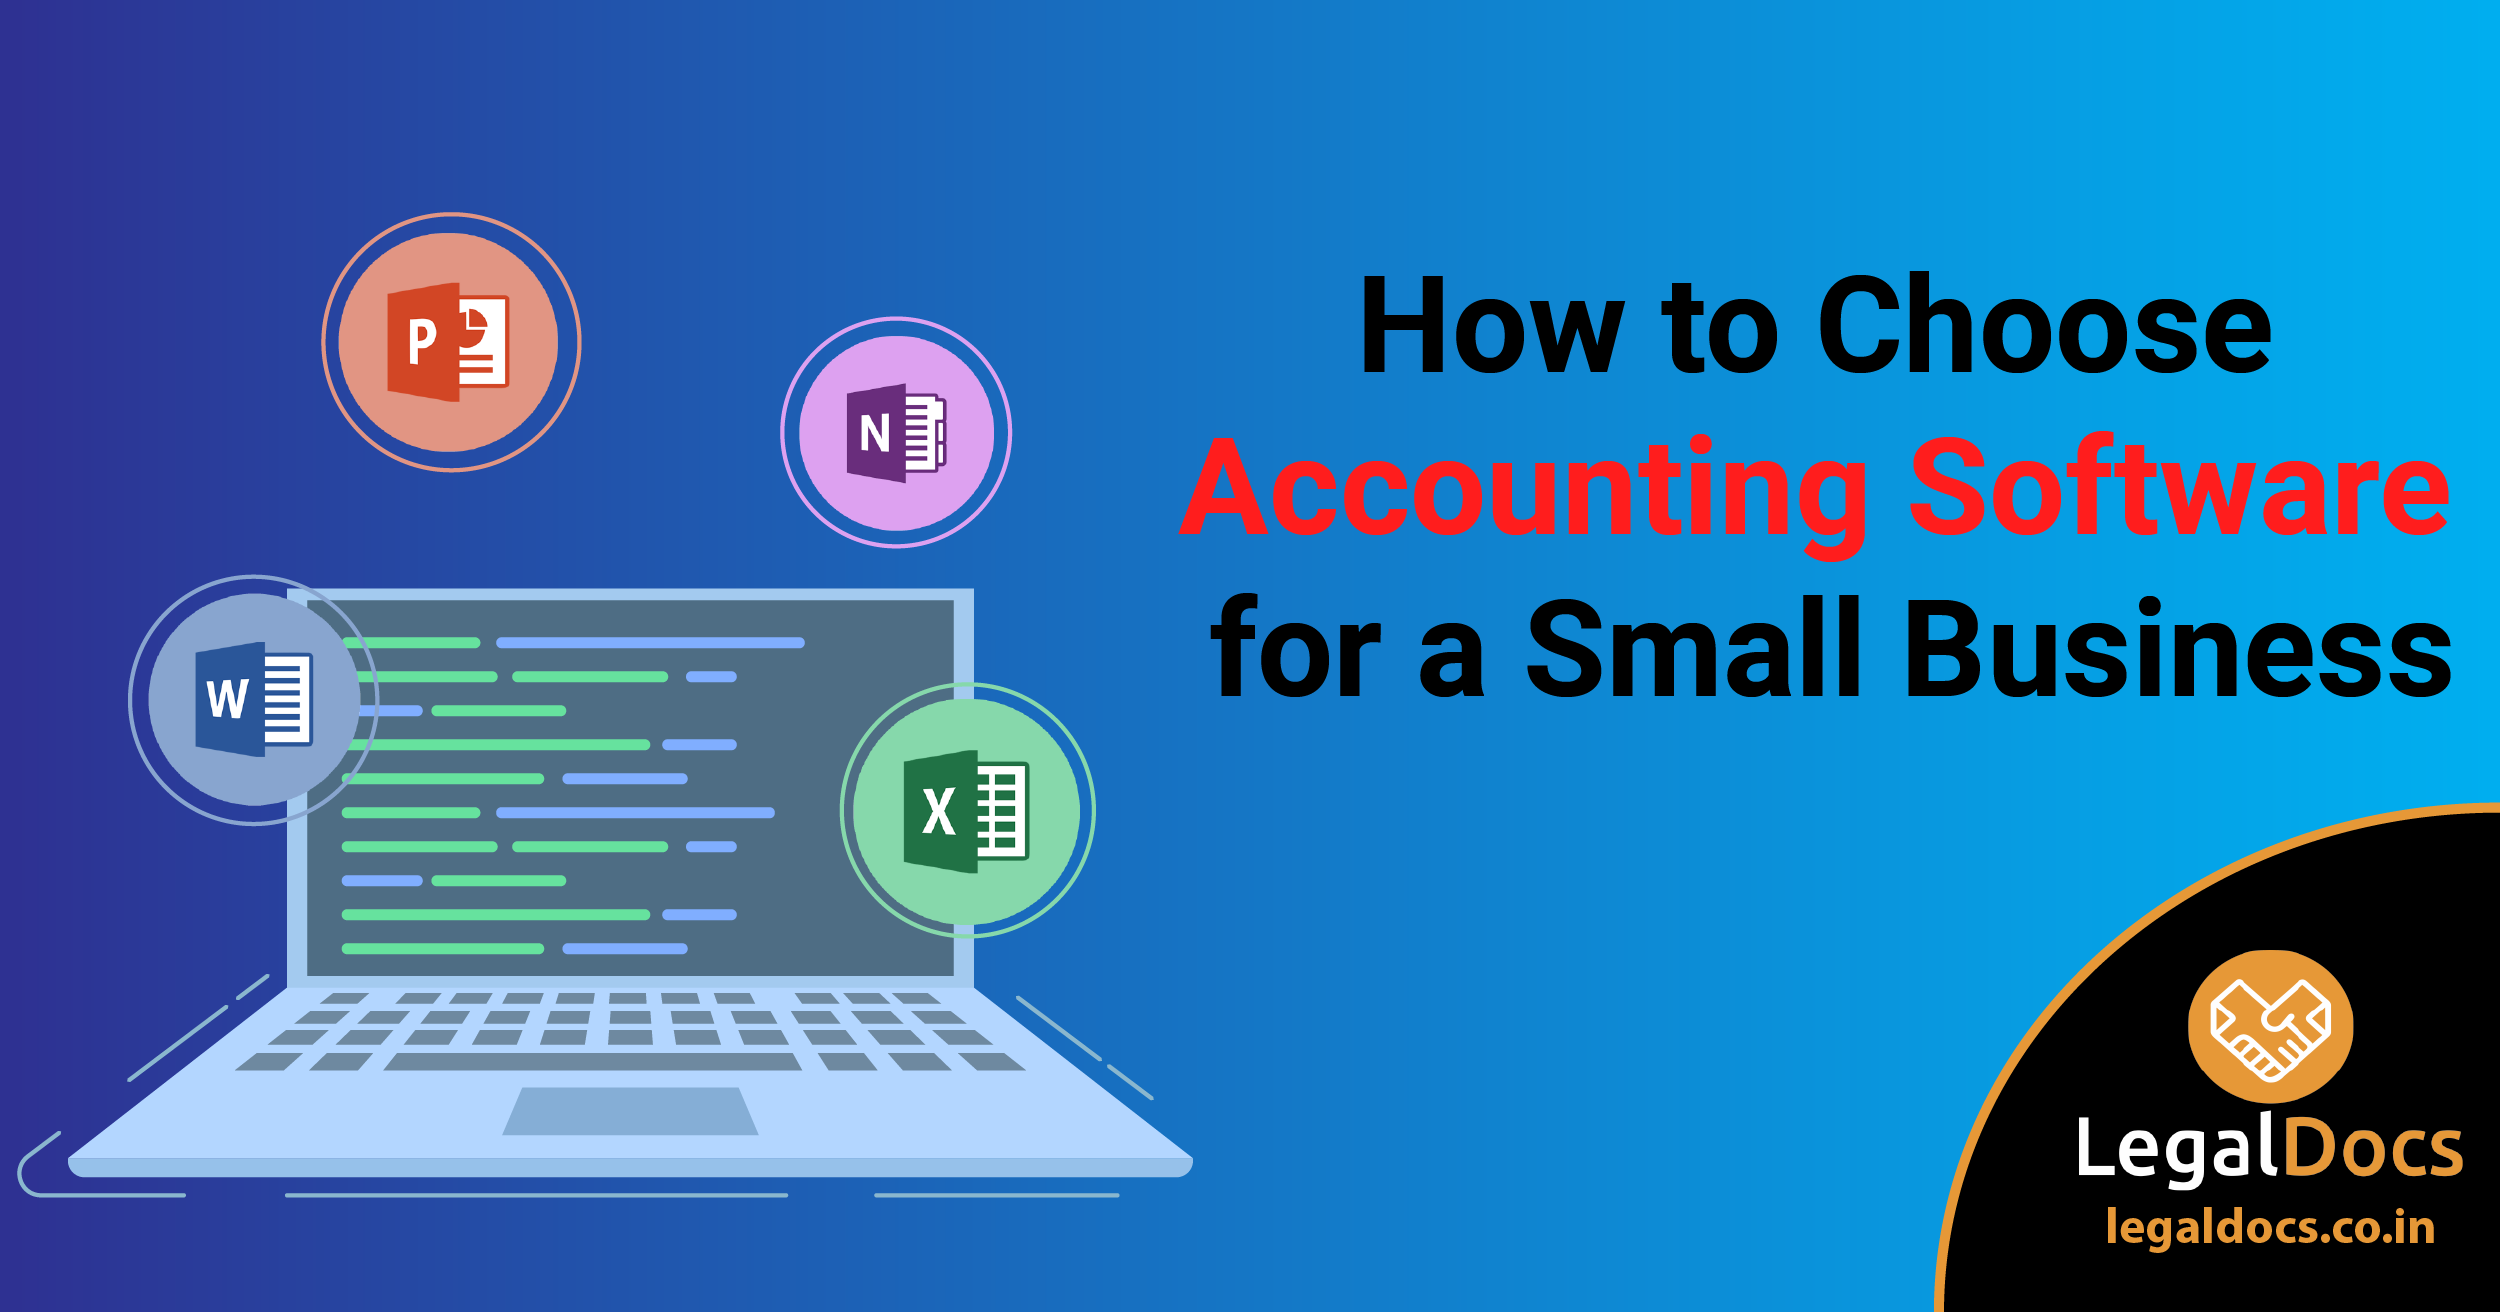 How to Choose Accounting Software for a Small Business? - LegalDocs